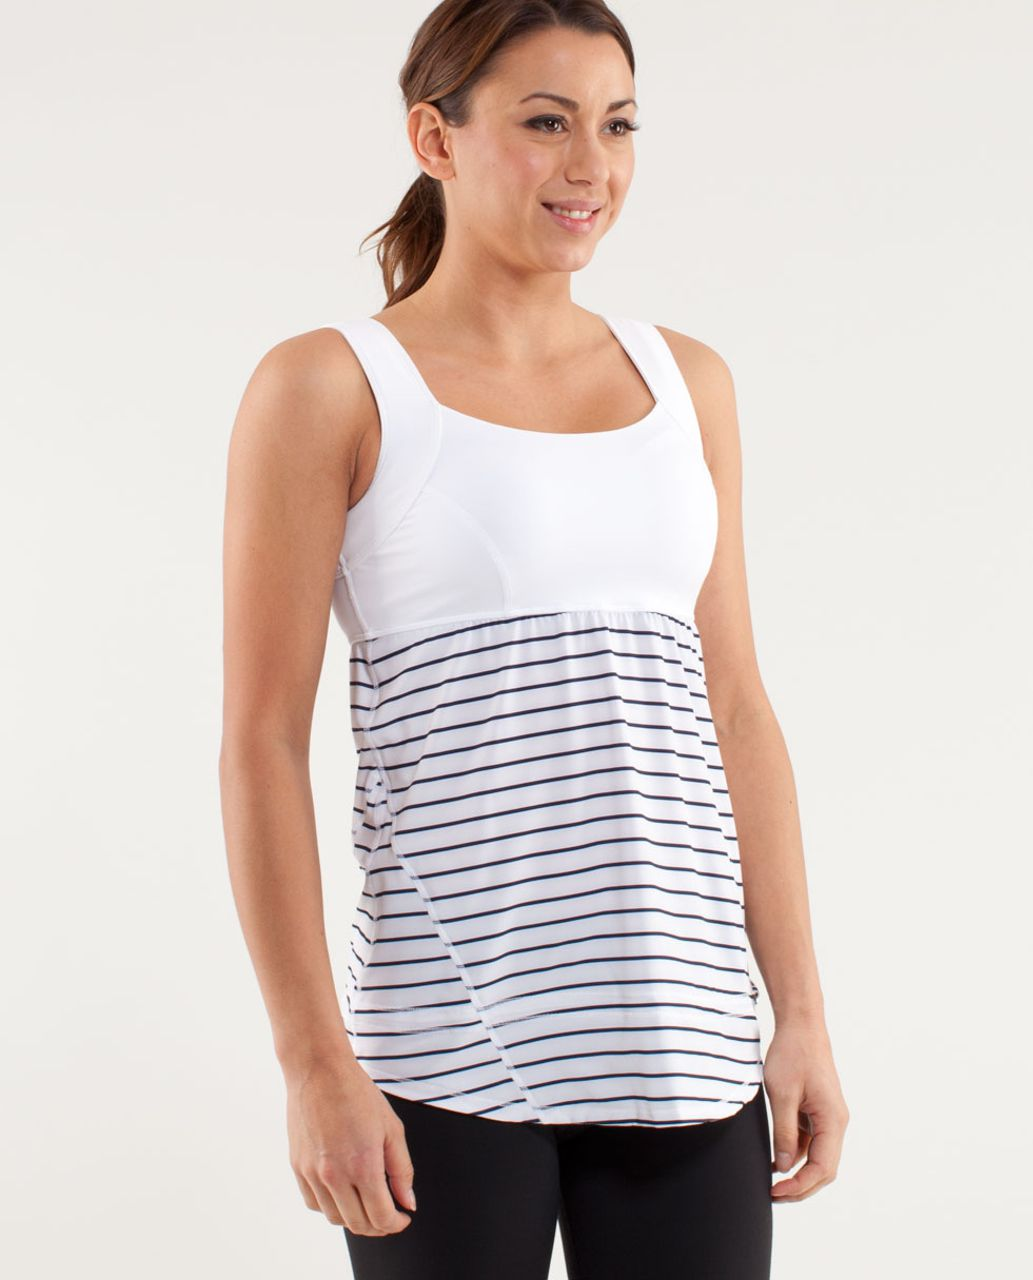 Lululemon Run:  Chase Me Tank - Quiet Stripe Printed White Deep Indigo